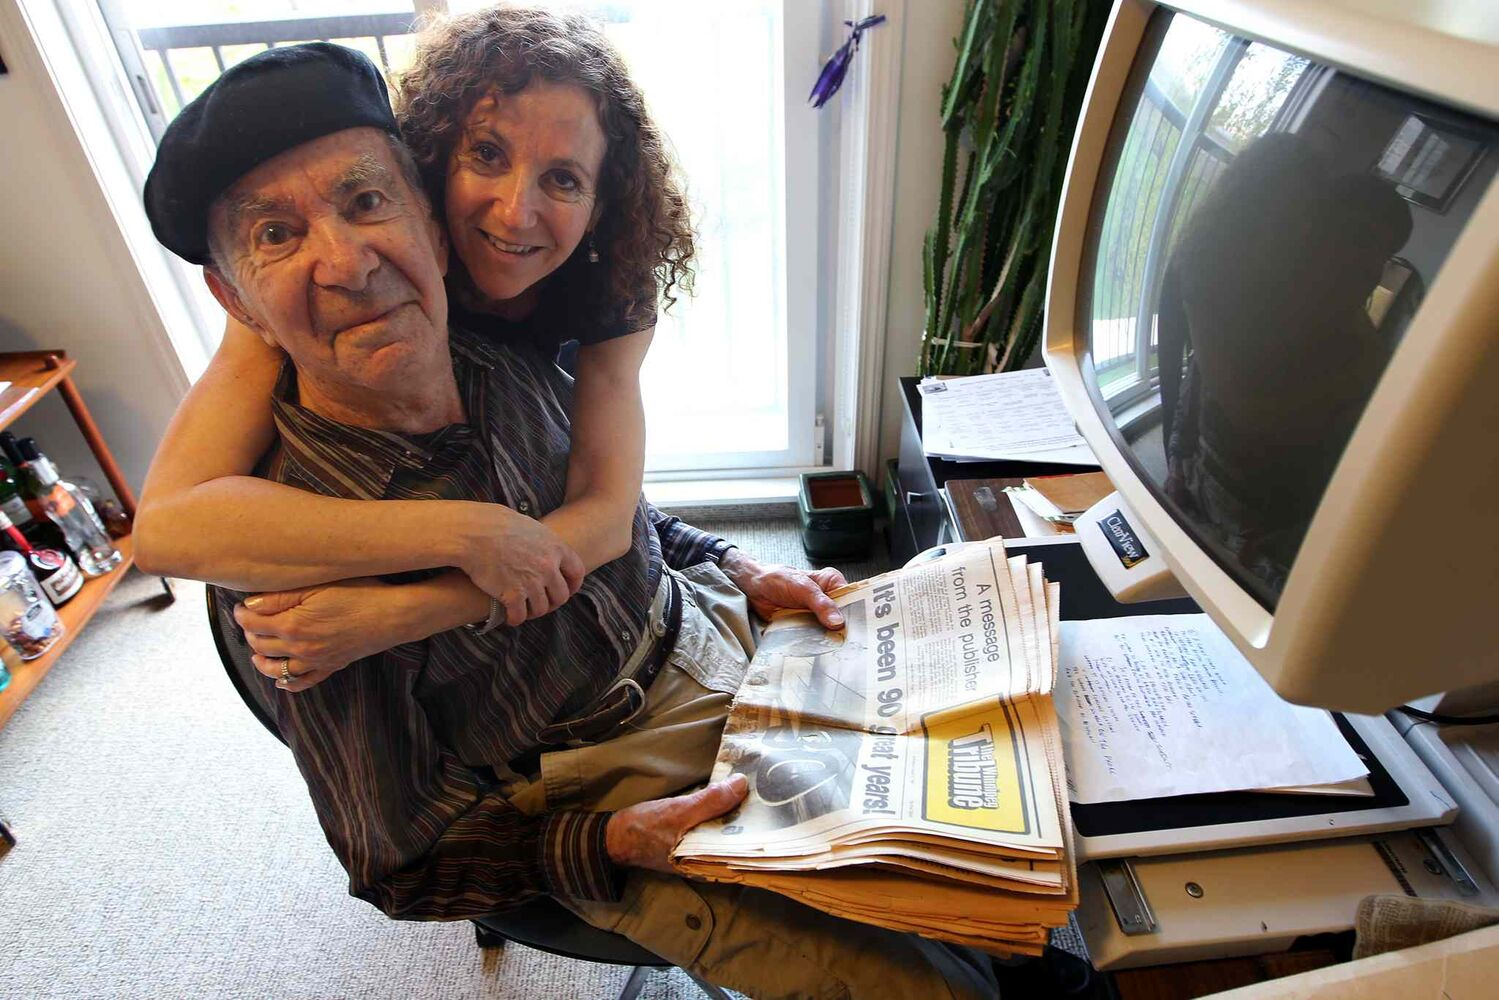 Val Werier receives a hug from his daughter, Judy, while seated at a computer and holding a copy of the Winnipeg Tribune on May 11, 2012.